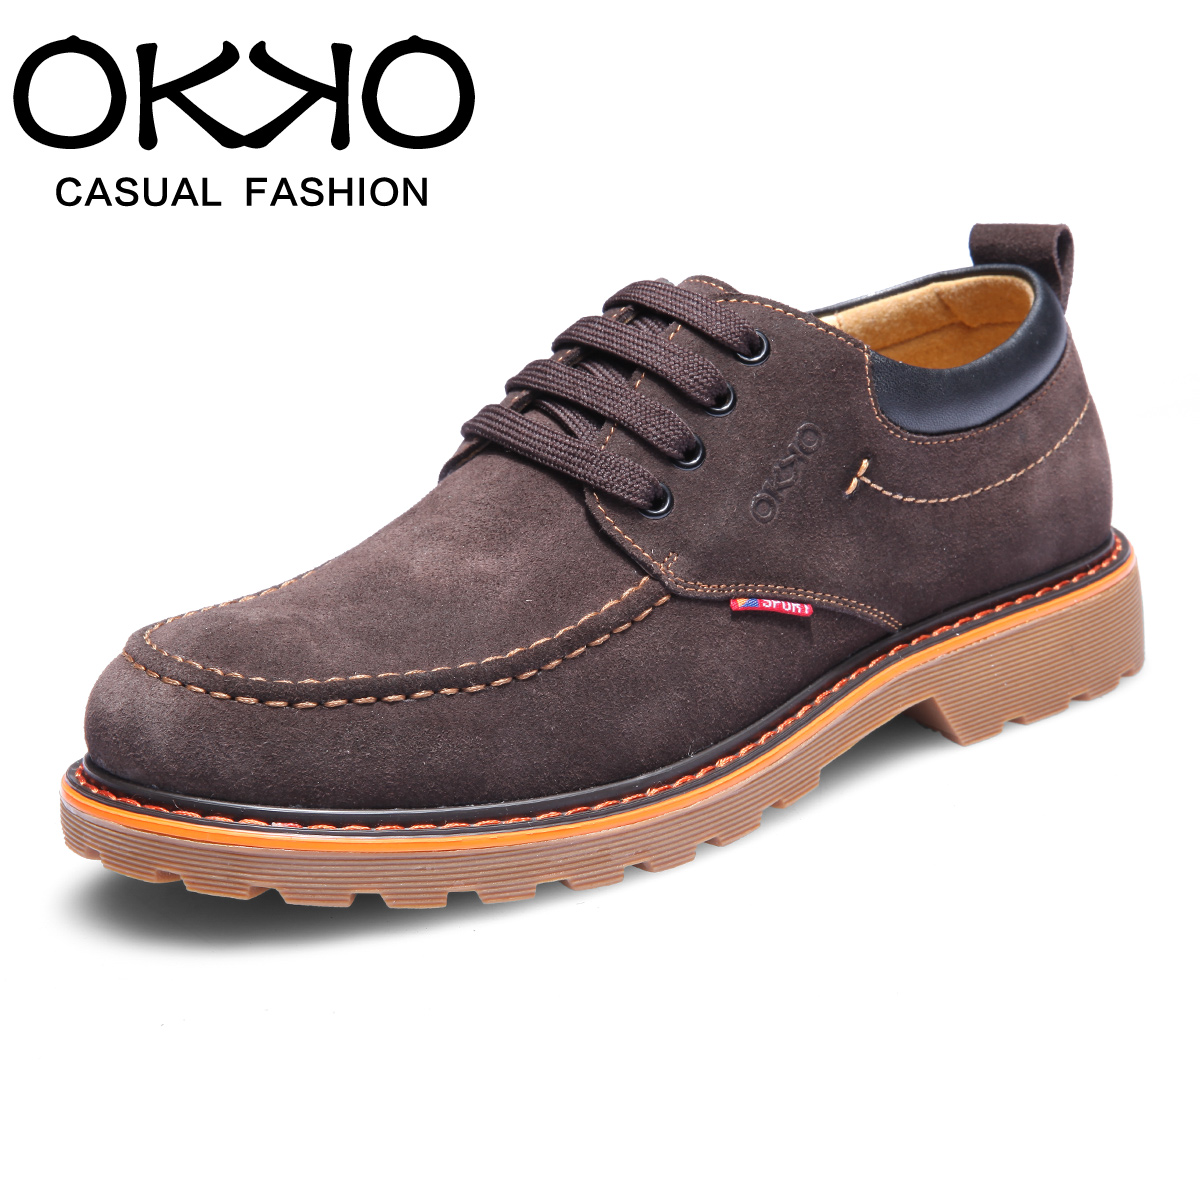 Okko men's casual leather men's shoes tide lace shoes british style trend of casual leather shoes breathable shoes autumn